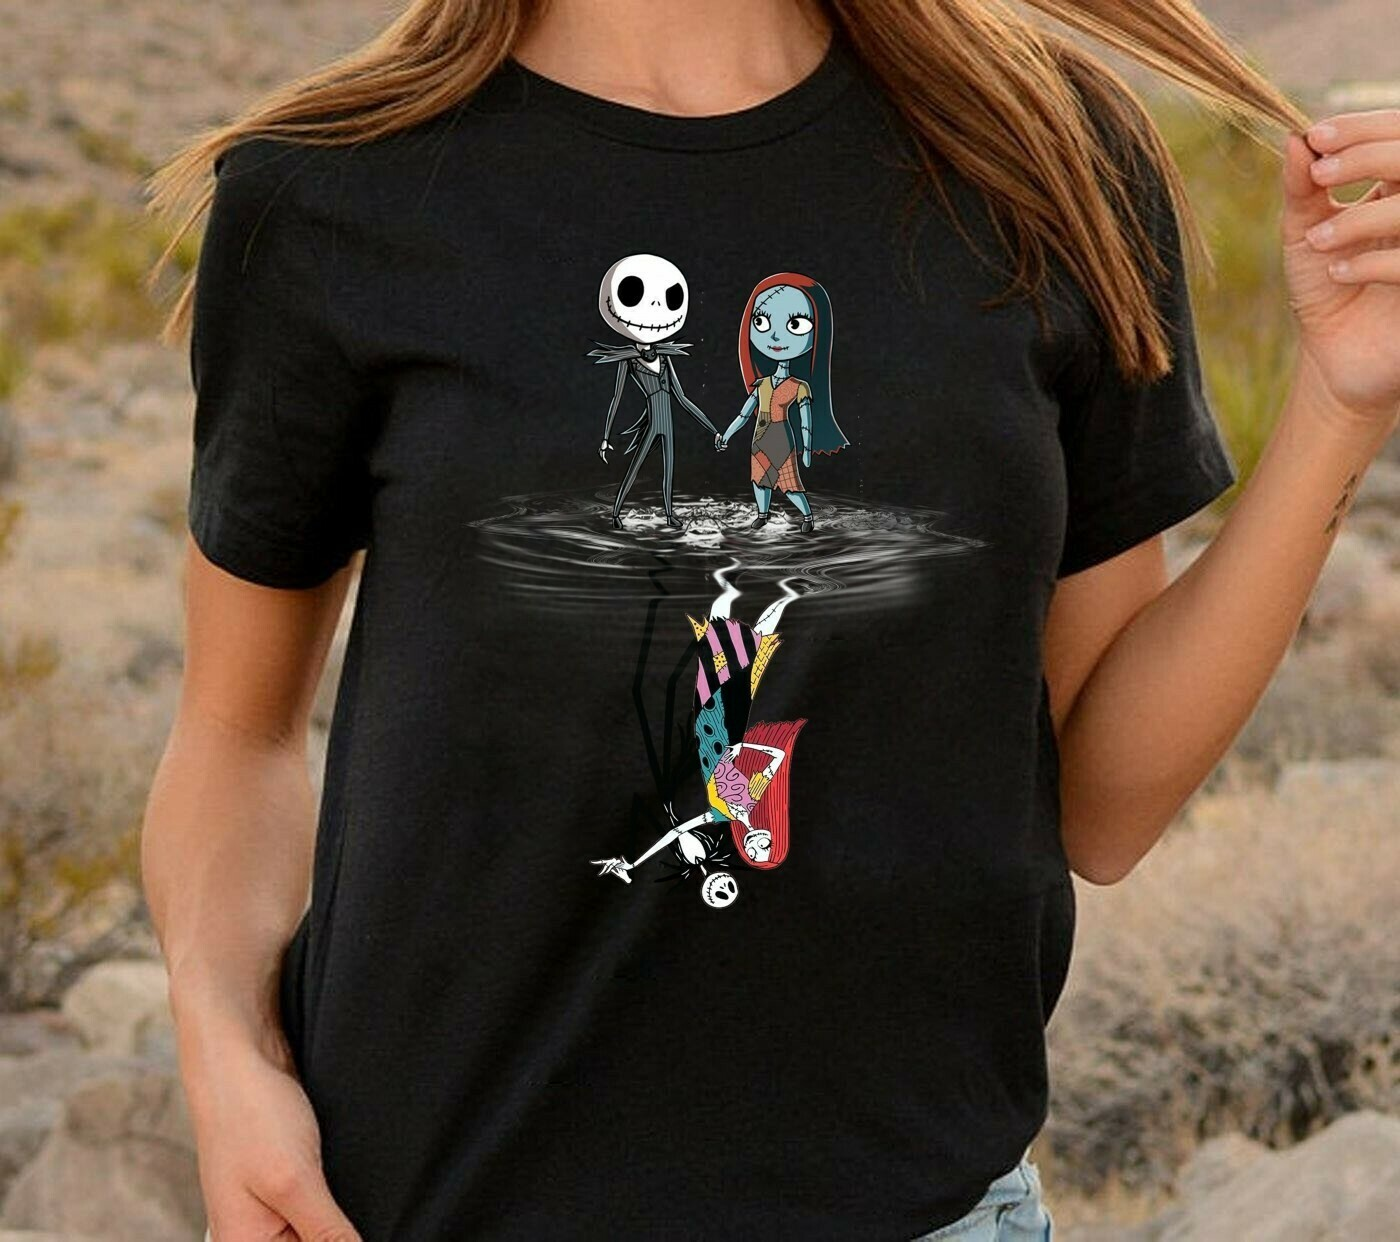 Funny Jack Reflection Maskup Jack Skellington And Sally Hocus Pocus The Nightmare Before Christmas Mickey Not so Scary Unisex T-shirt Long Sleeve Sweatshirt Hoodie Jolly Family Gifts